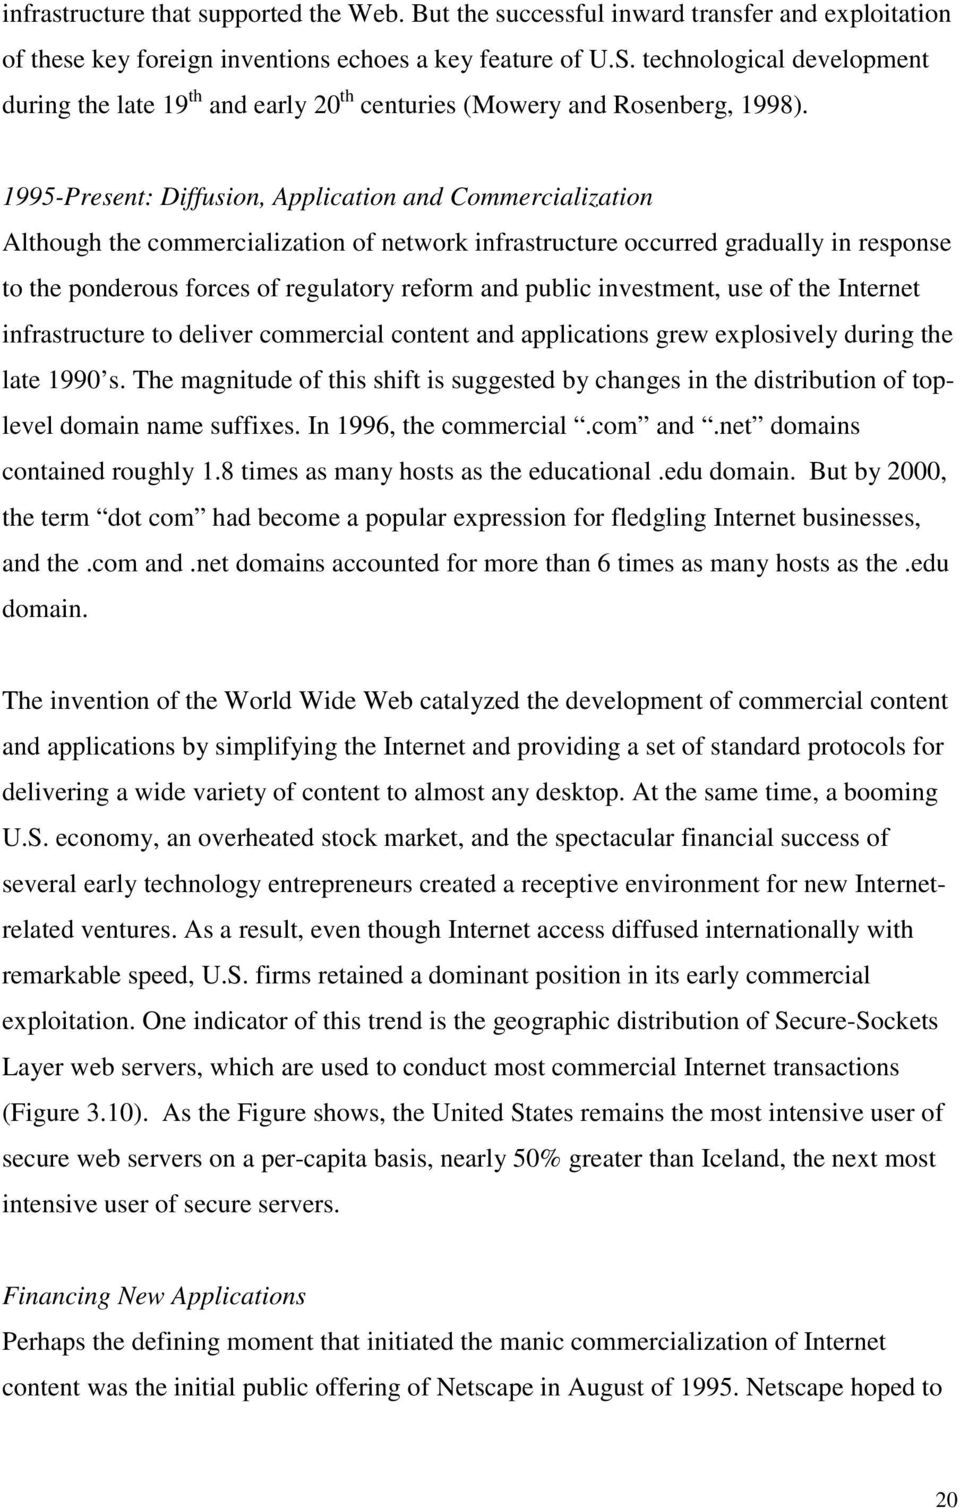 1995-Present: Diffusion, Application and Commercialization Although the commercialization of network infrastructure occurred gradually in response to the ponderous forces of regulatory reform and